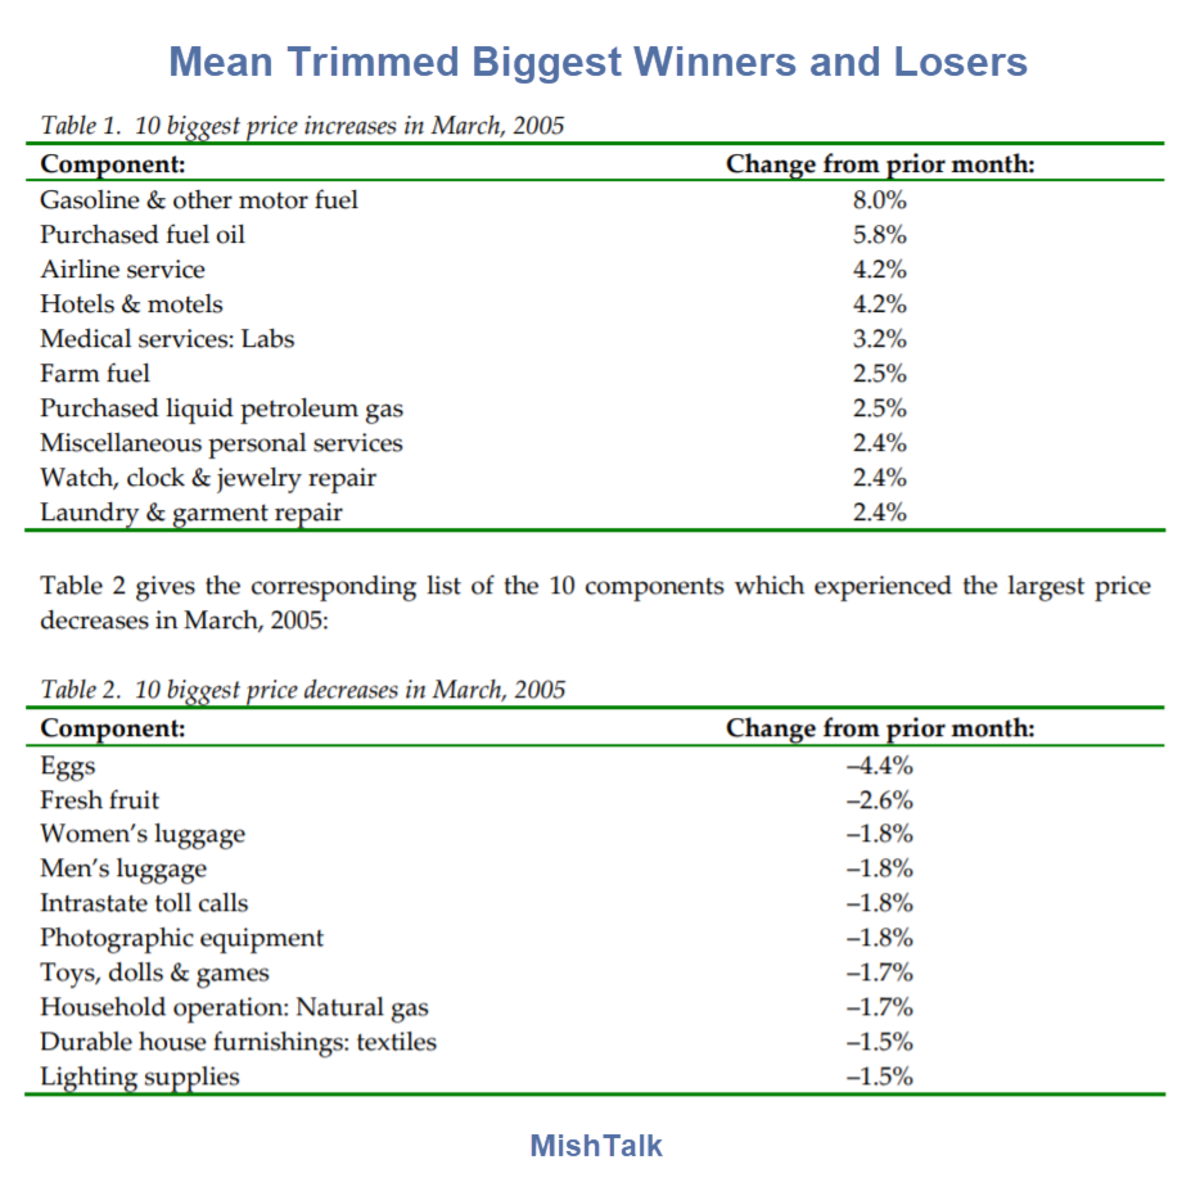 Mean Trimmed Biggest Winners and Losers